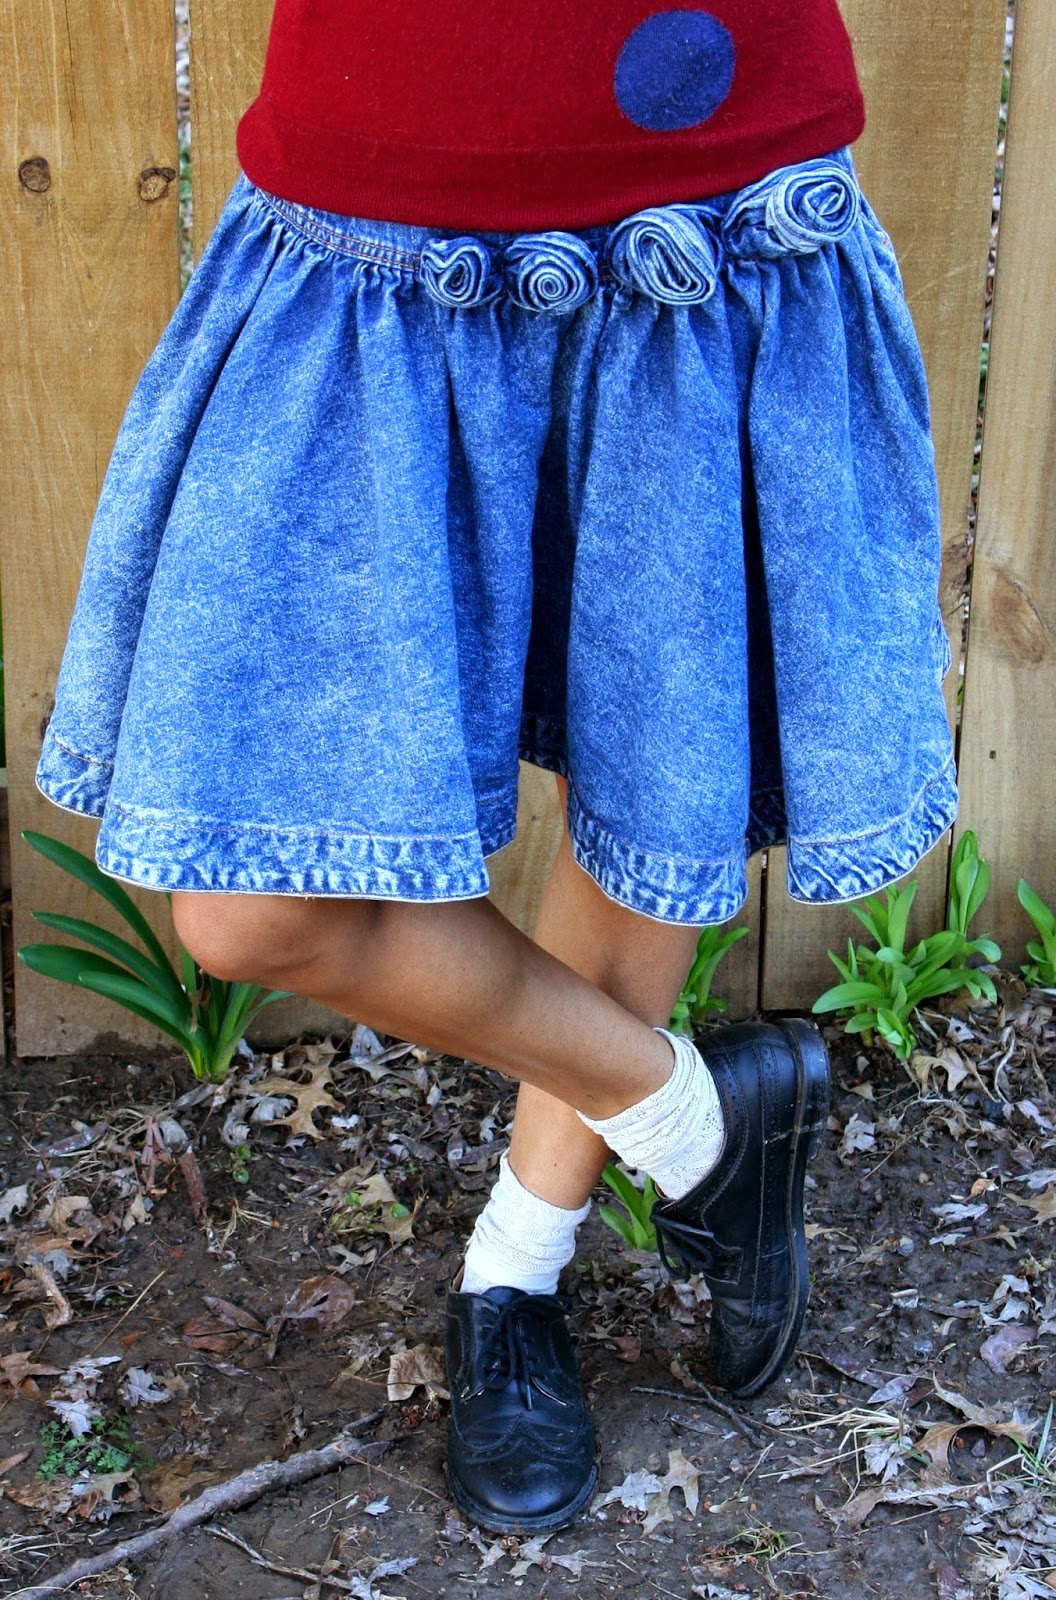 denim skirt and oxfords